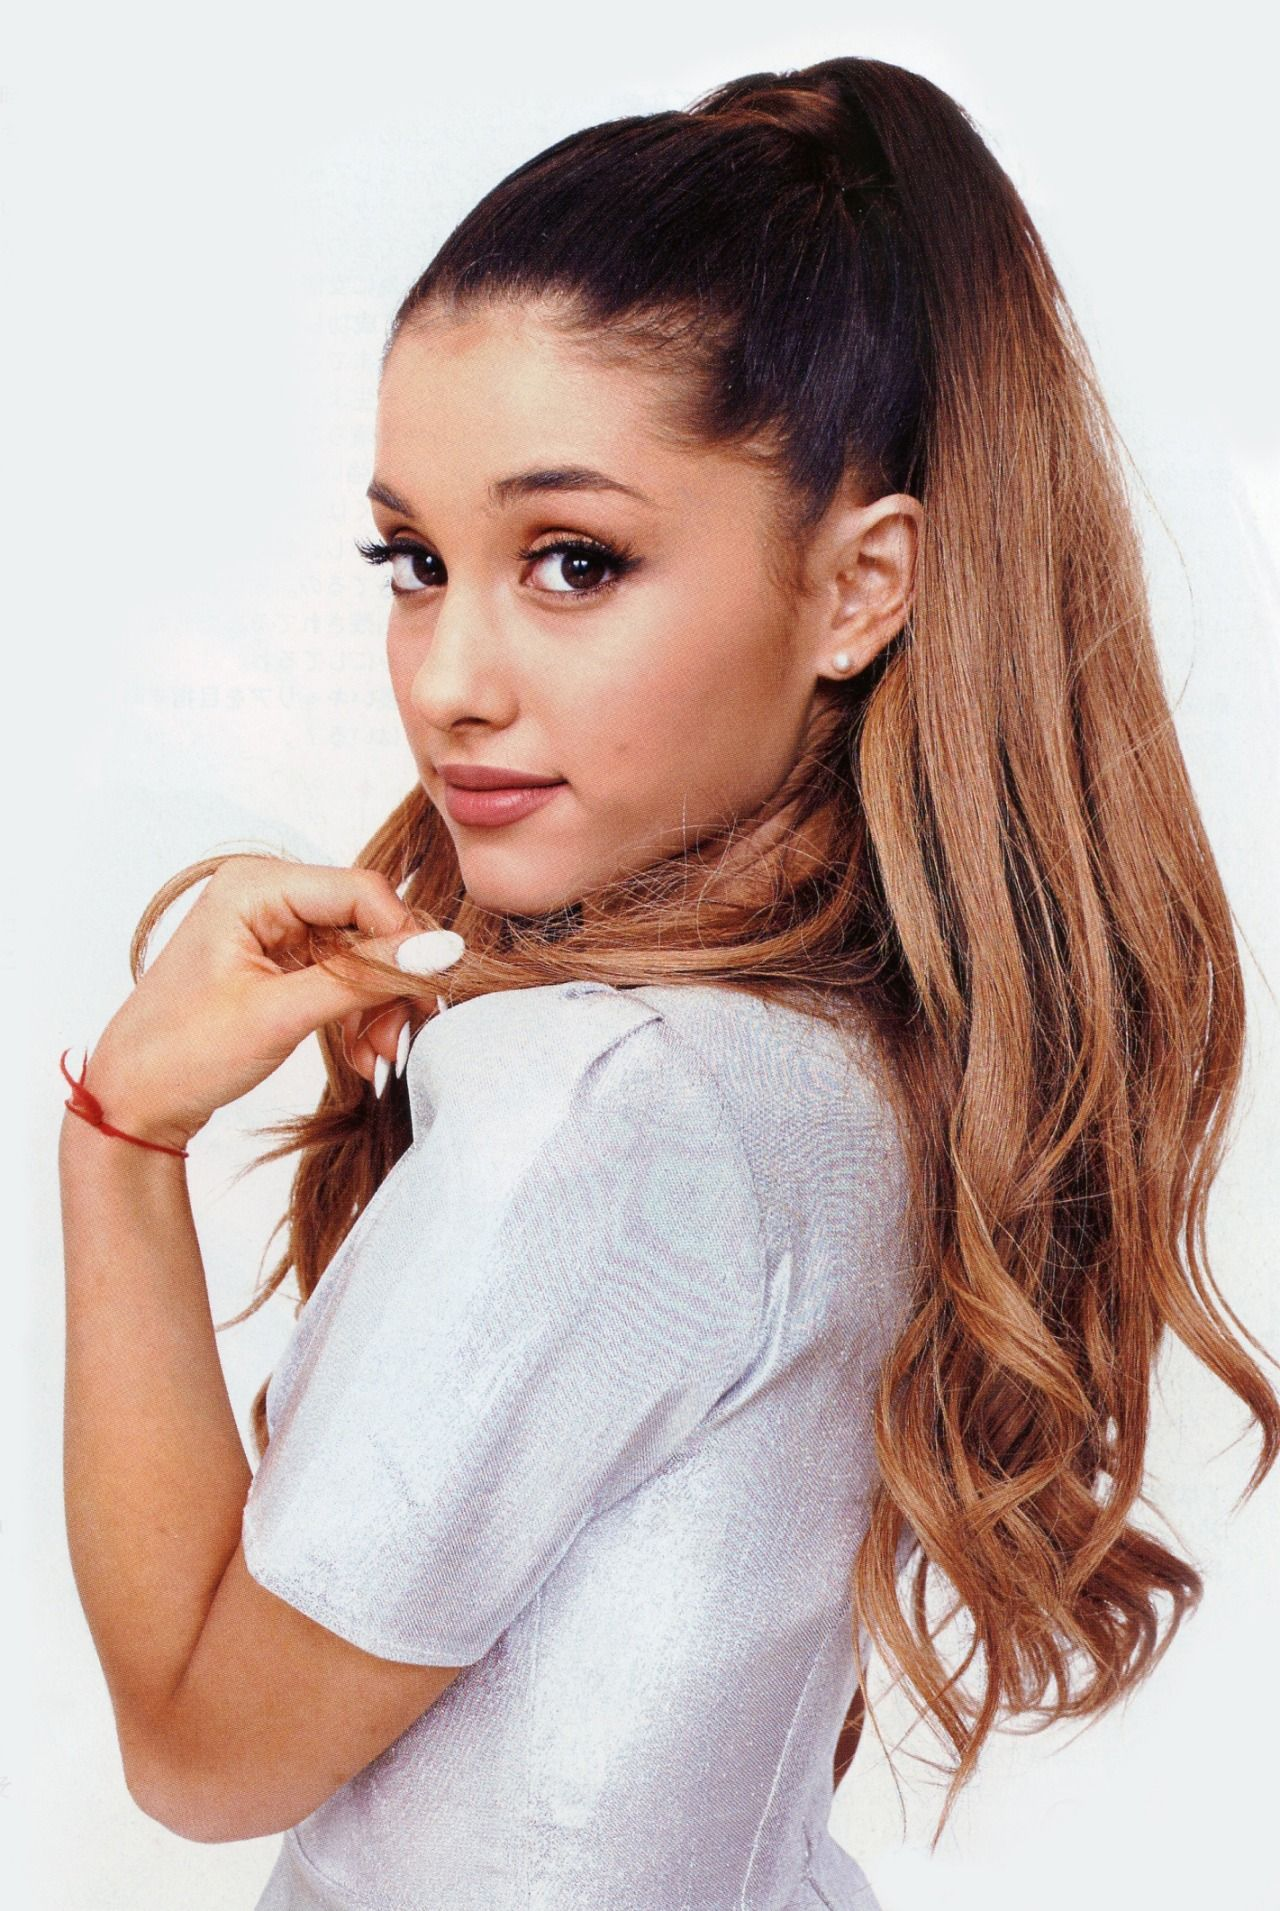 Ariana Grande Photoshoot For Inrock Magazine Japan